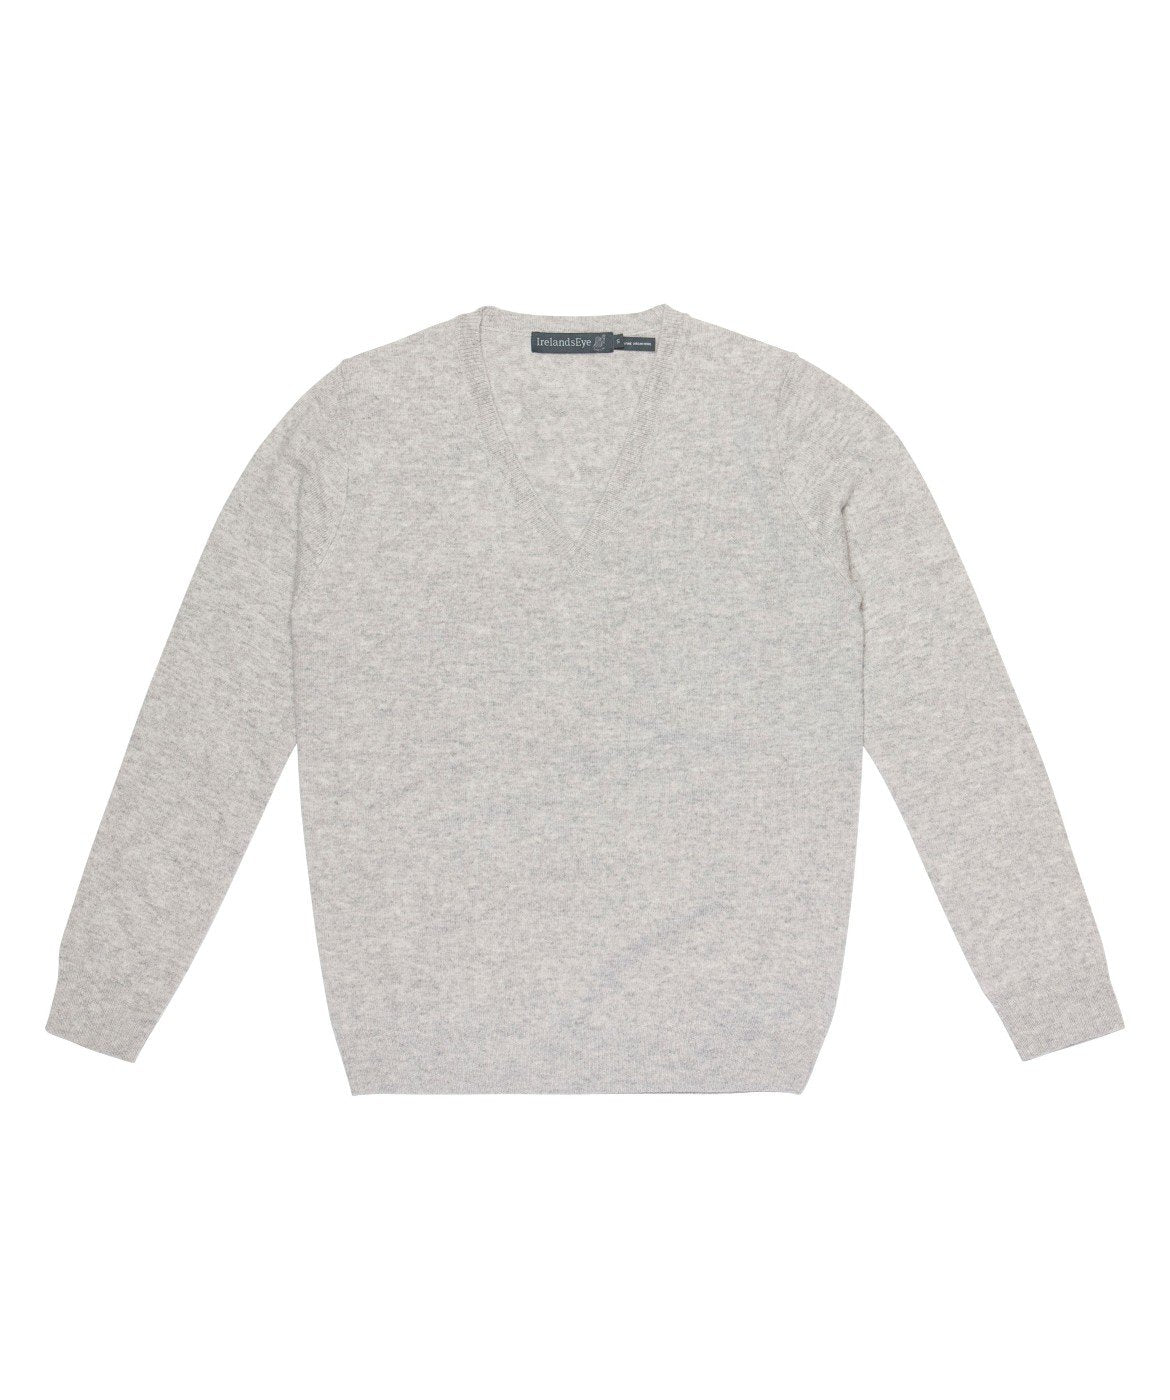 Women's Luxe Touch Wool V Neck Sweater Silver-SeaSpray